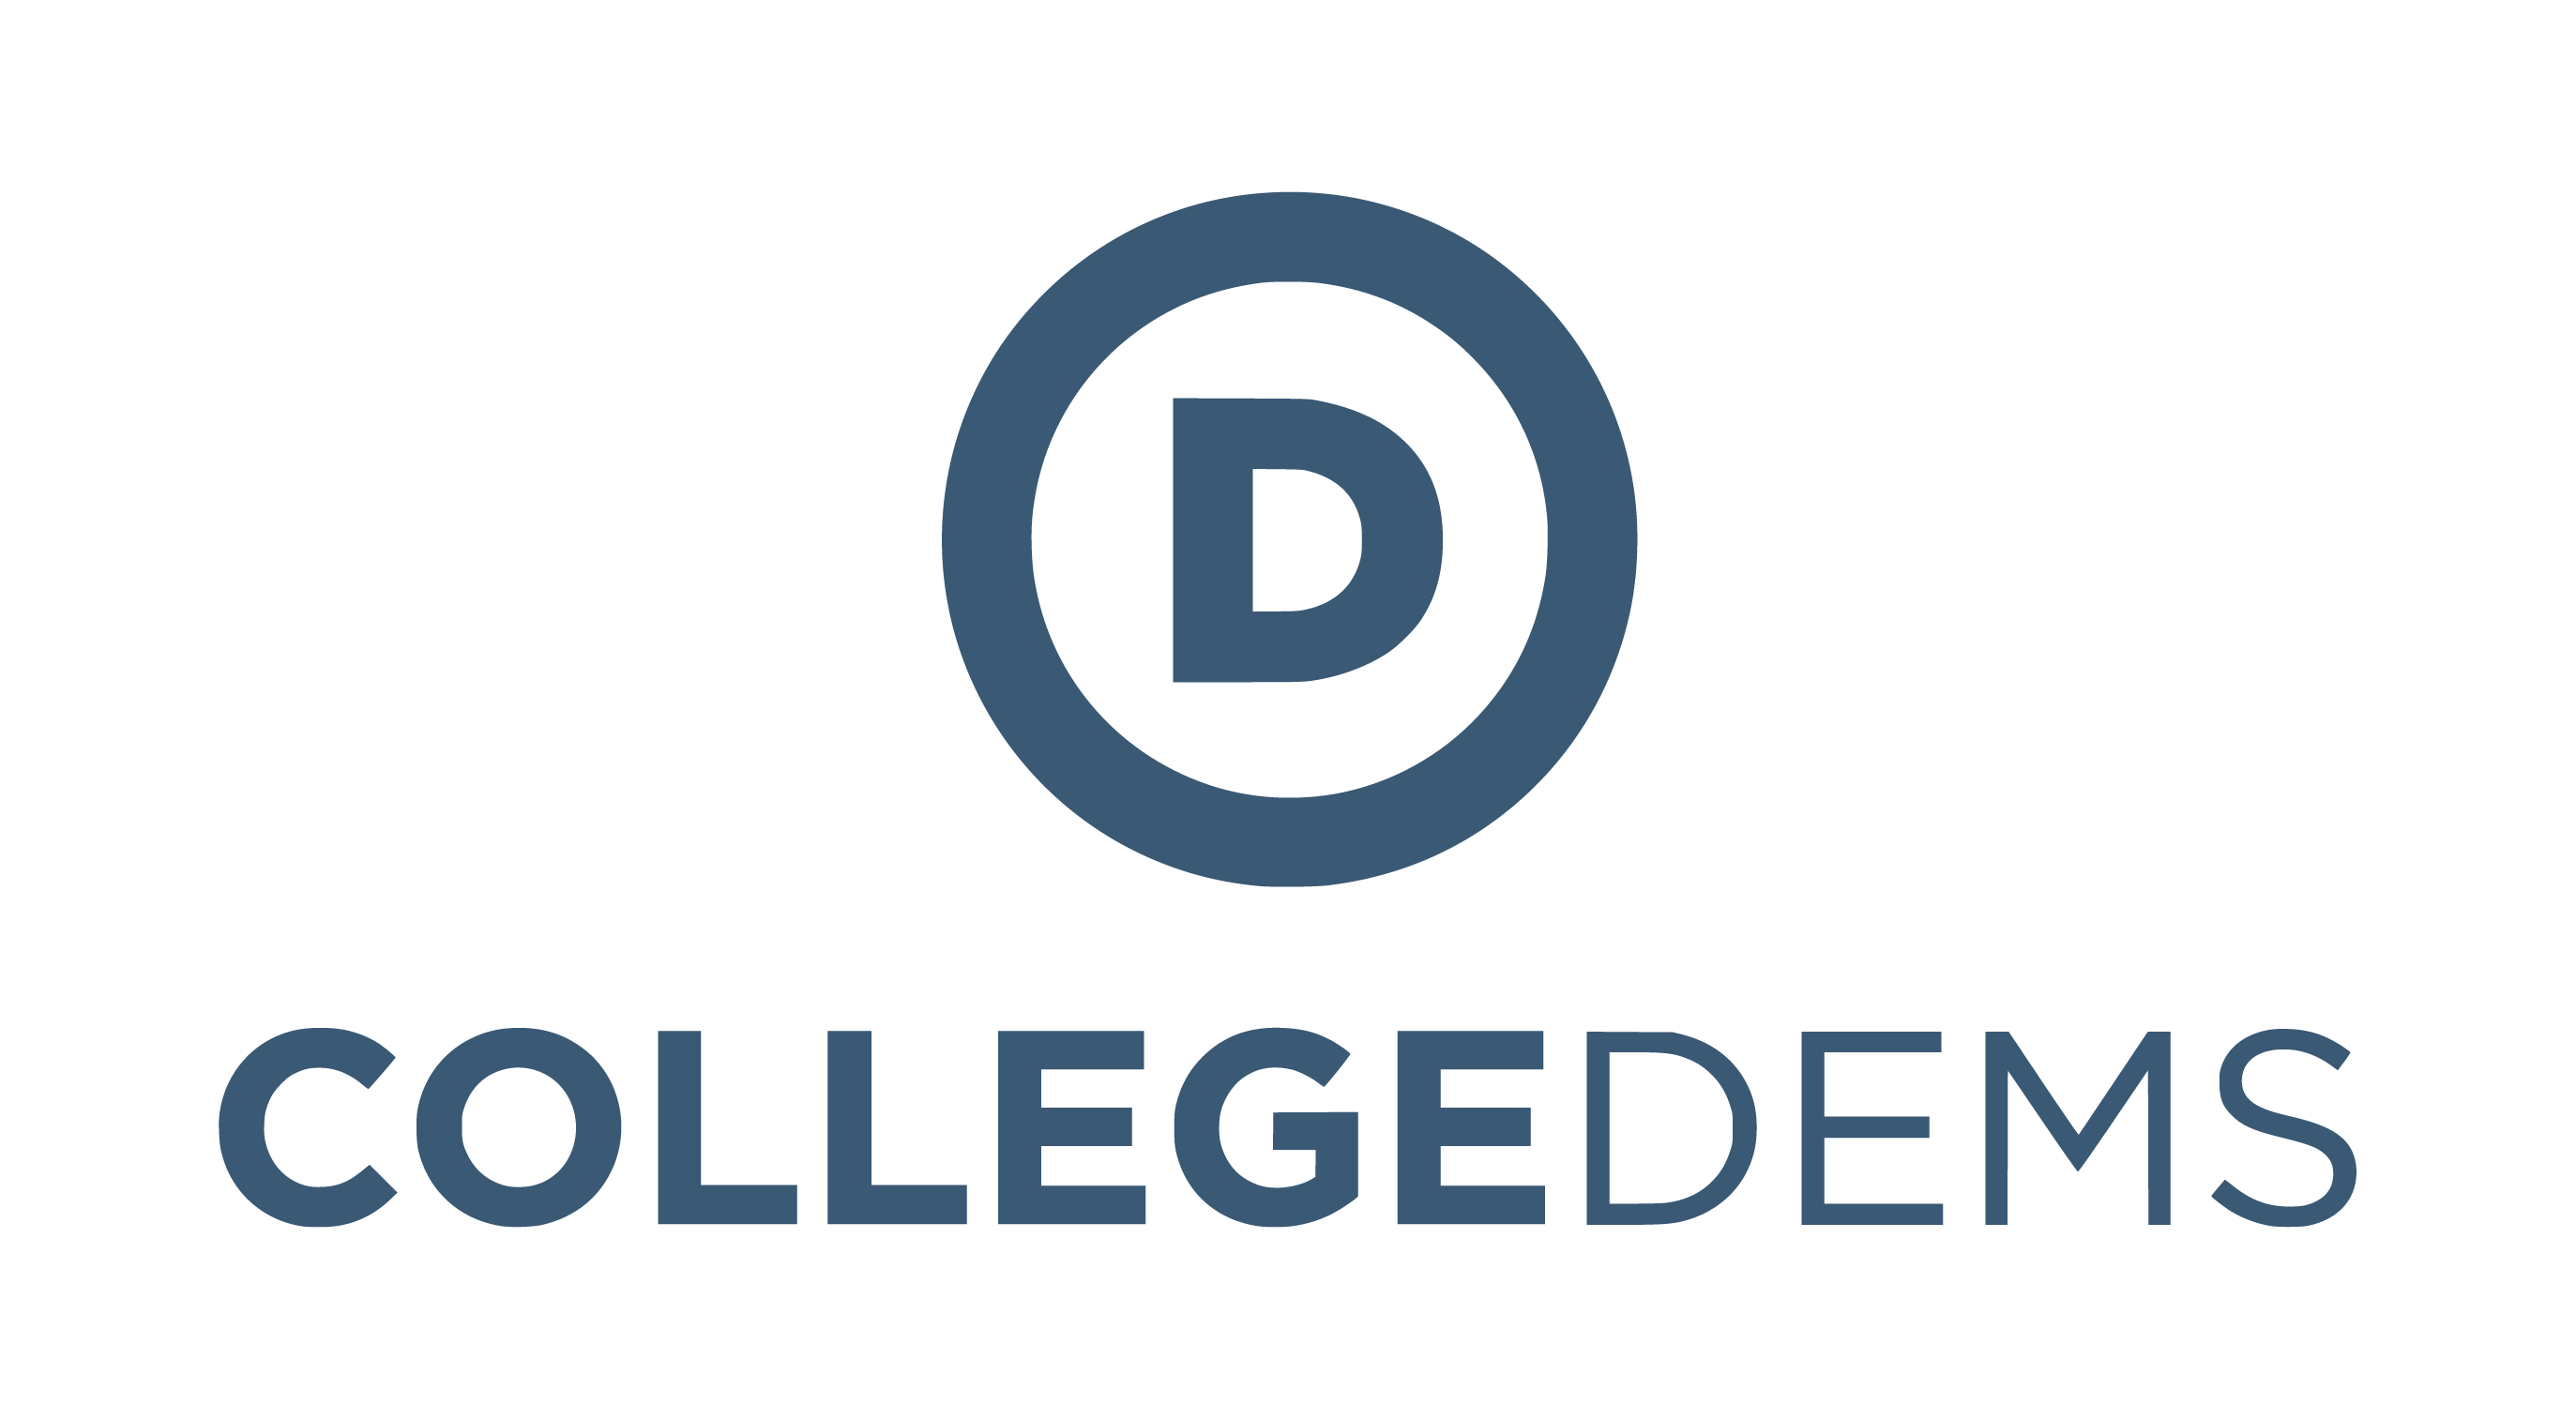 College Democrats of America